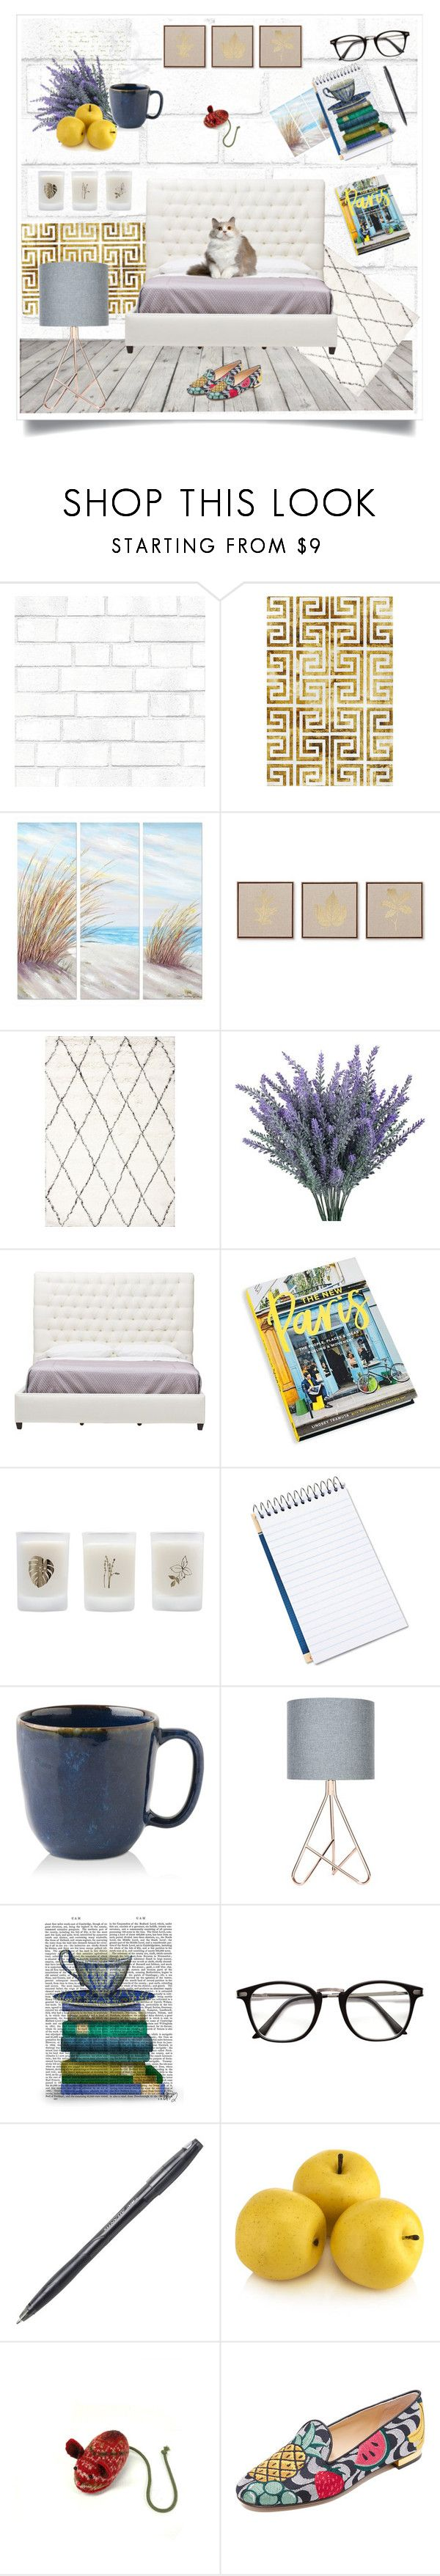 """""""Where is my mouse?"""" by k-postal ❤ liked on Polyvore featuring interior, interiors, interior design, home, home decor, interior decorating, Tempaper, WALL, Yosemite Home Décor and JLA Home"""